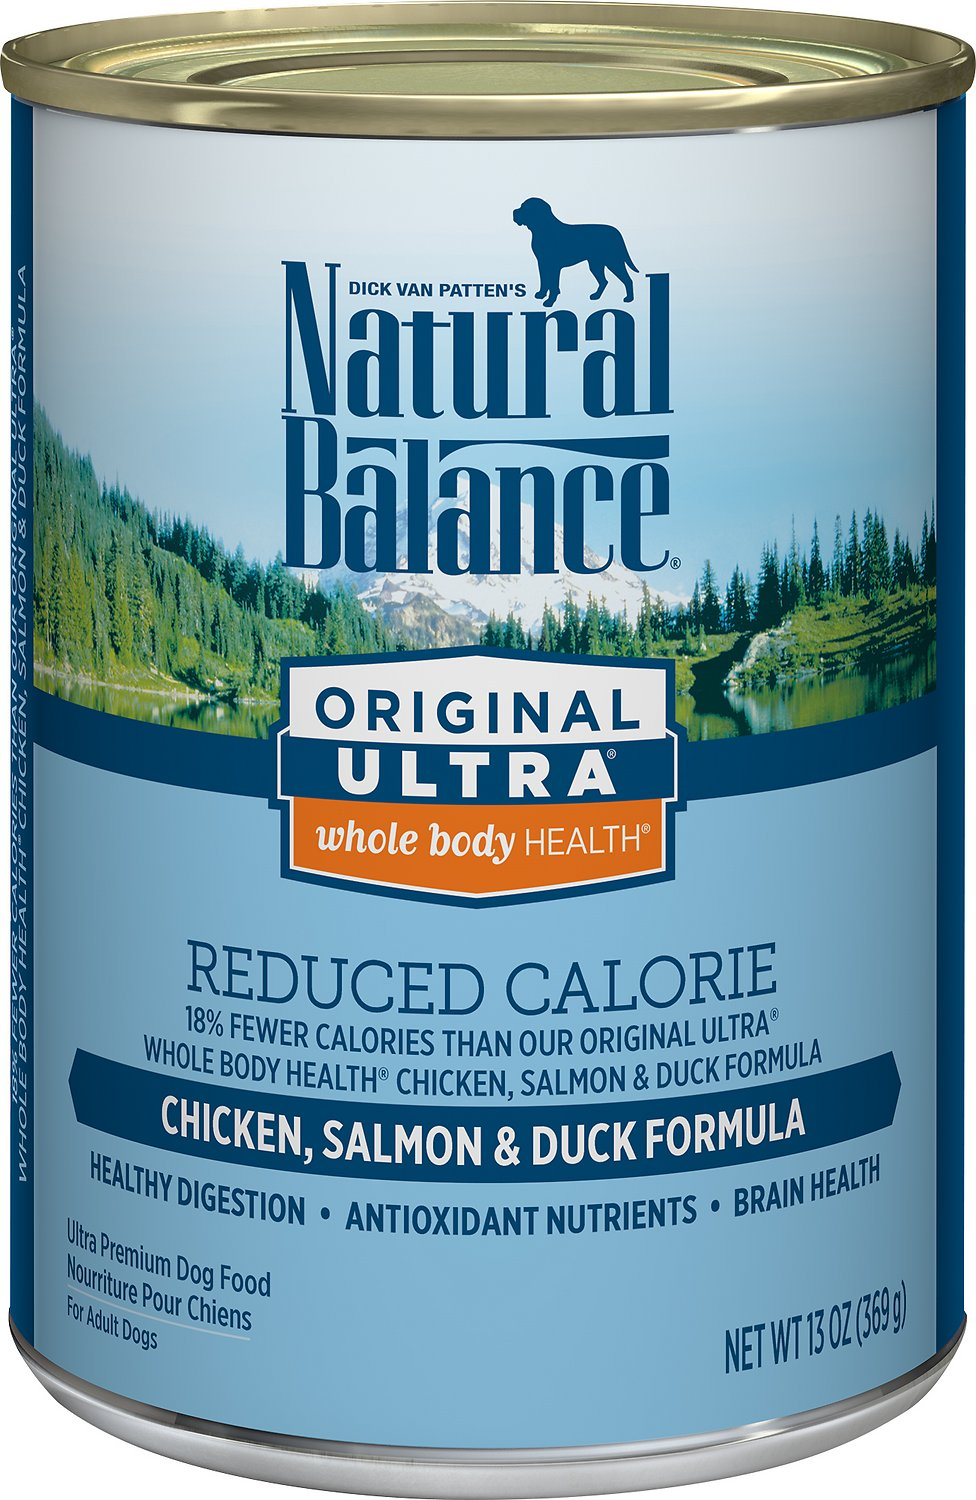 Natural Balance Original Ultra Whole Body Health Reduced Calorie Chicken, Salmon & Duck Formula Canned Dog Food, 13-oz